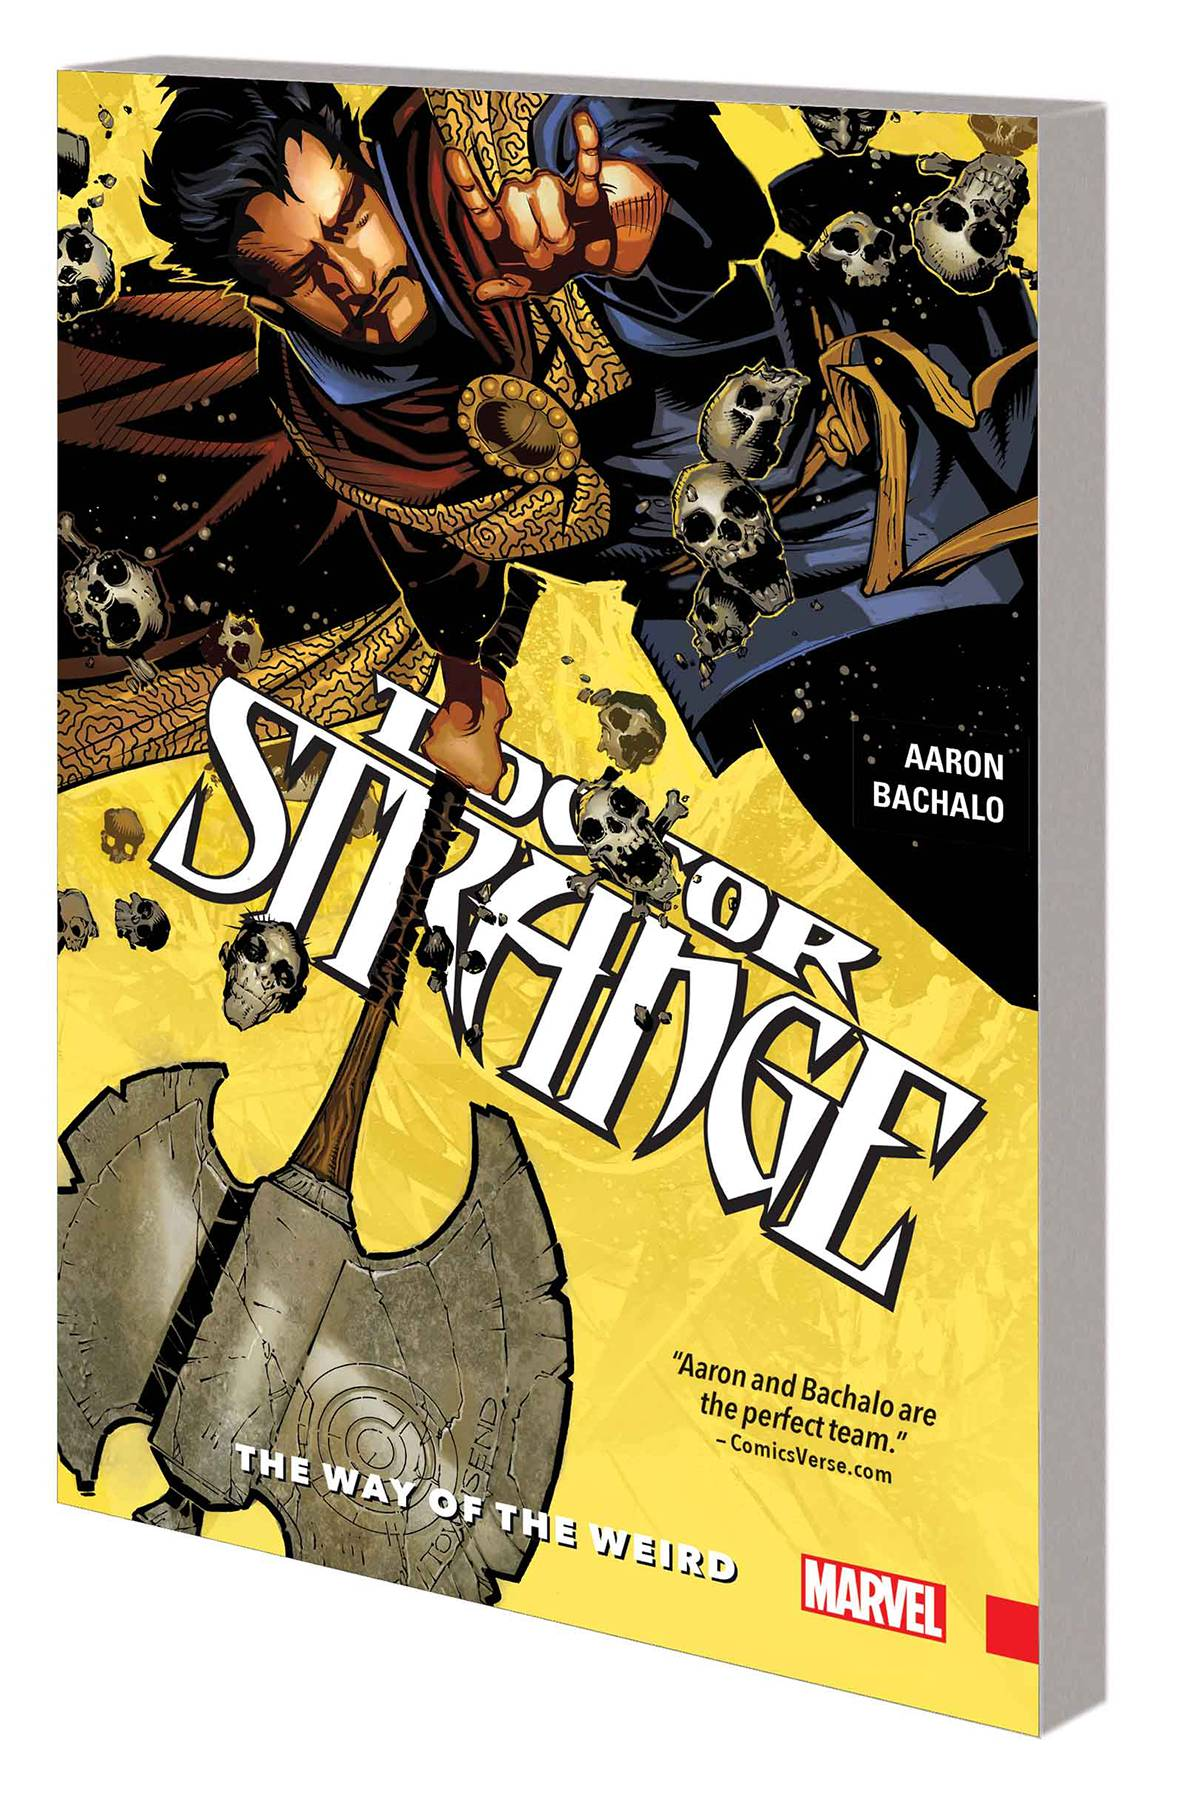 DOCTOR STRANGE VOL 01: THE WAY OF THE WEIRD